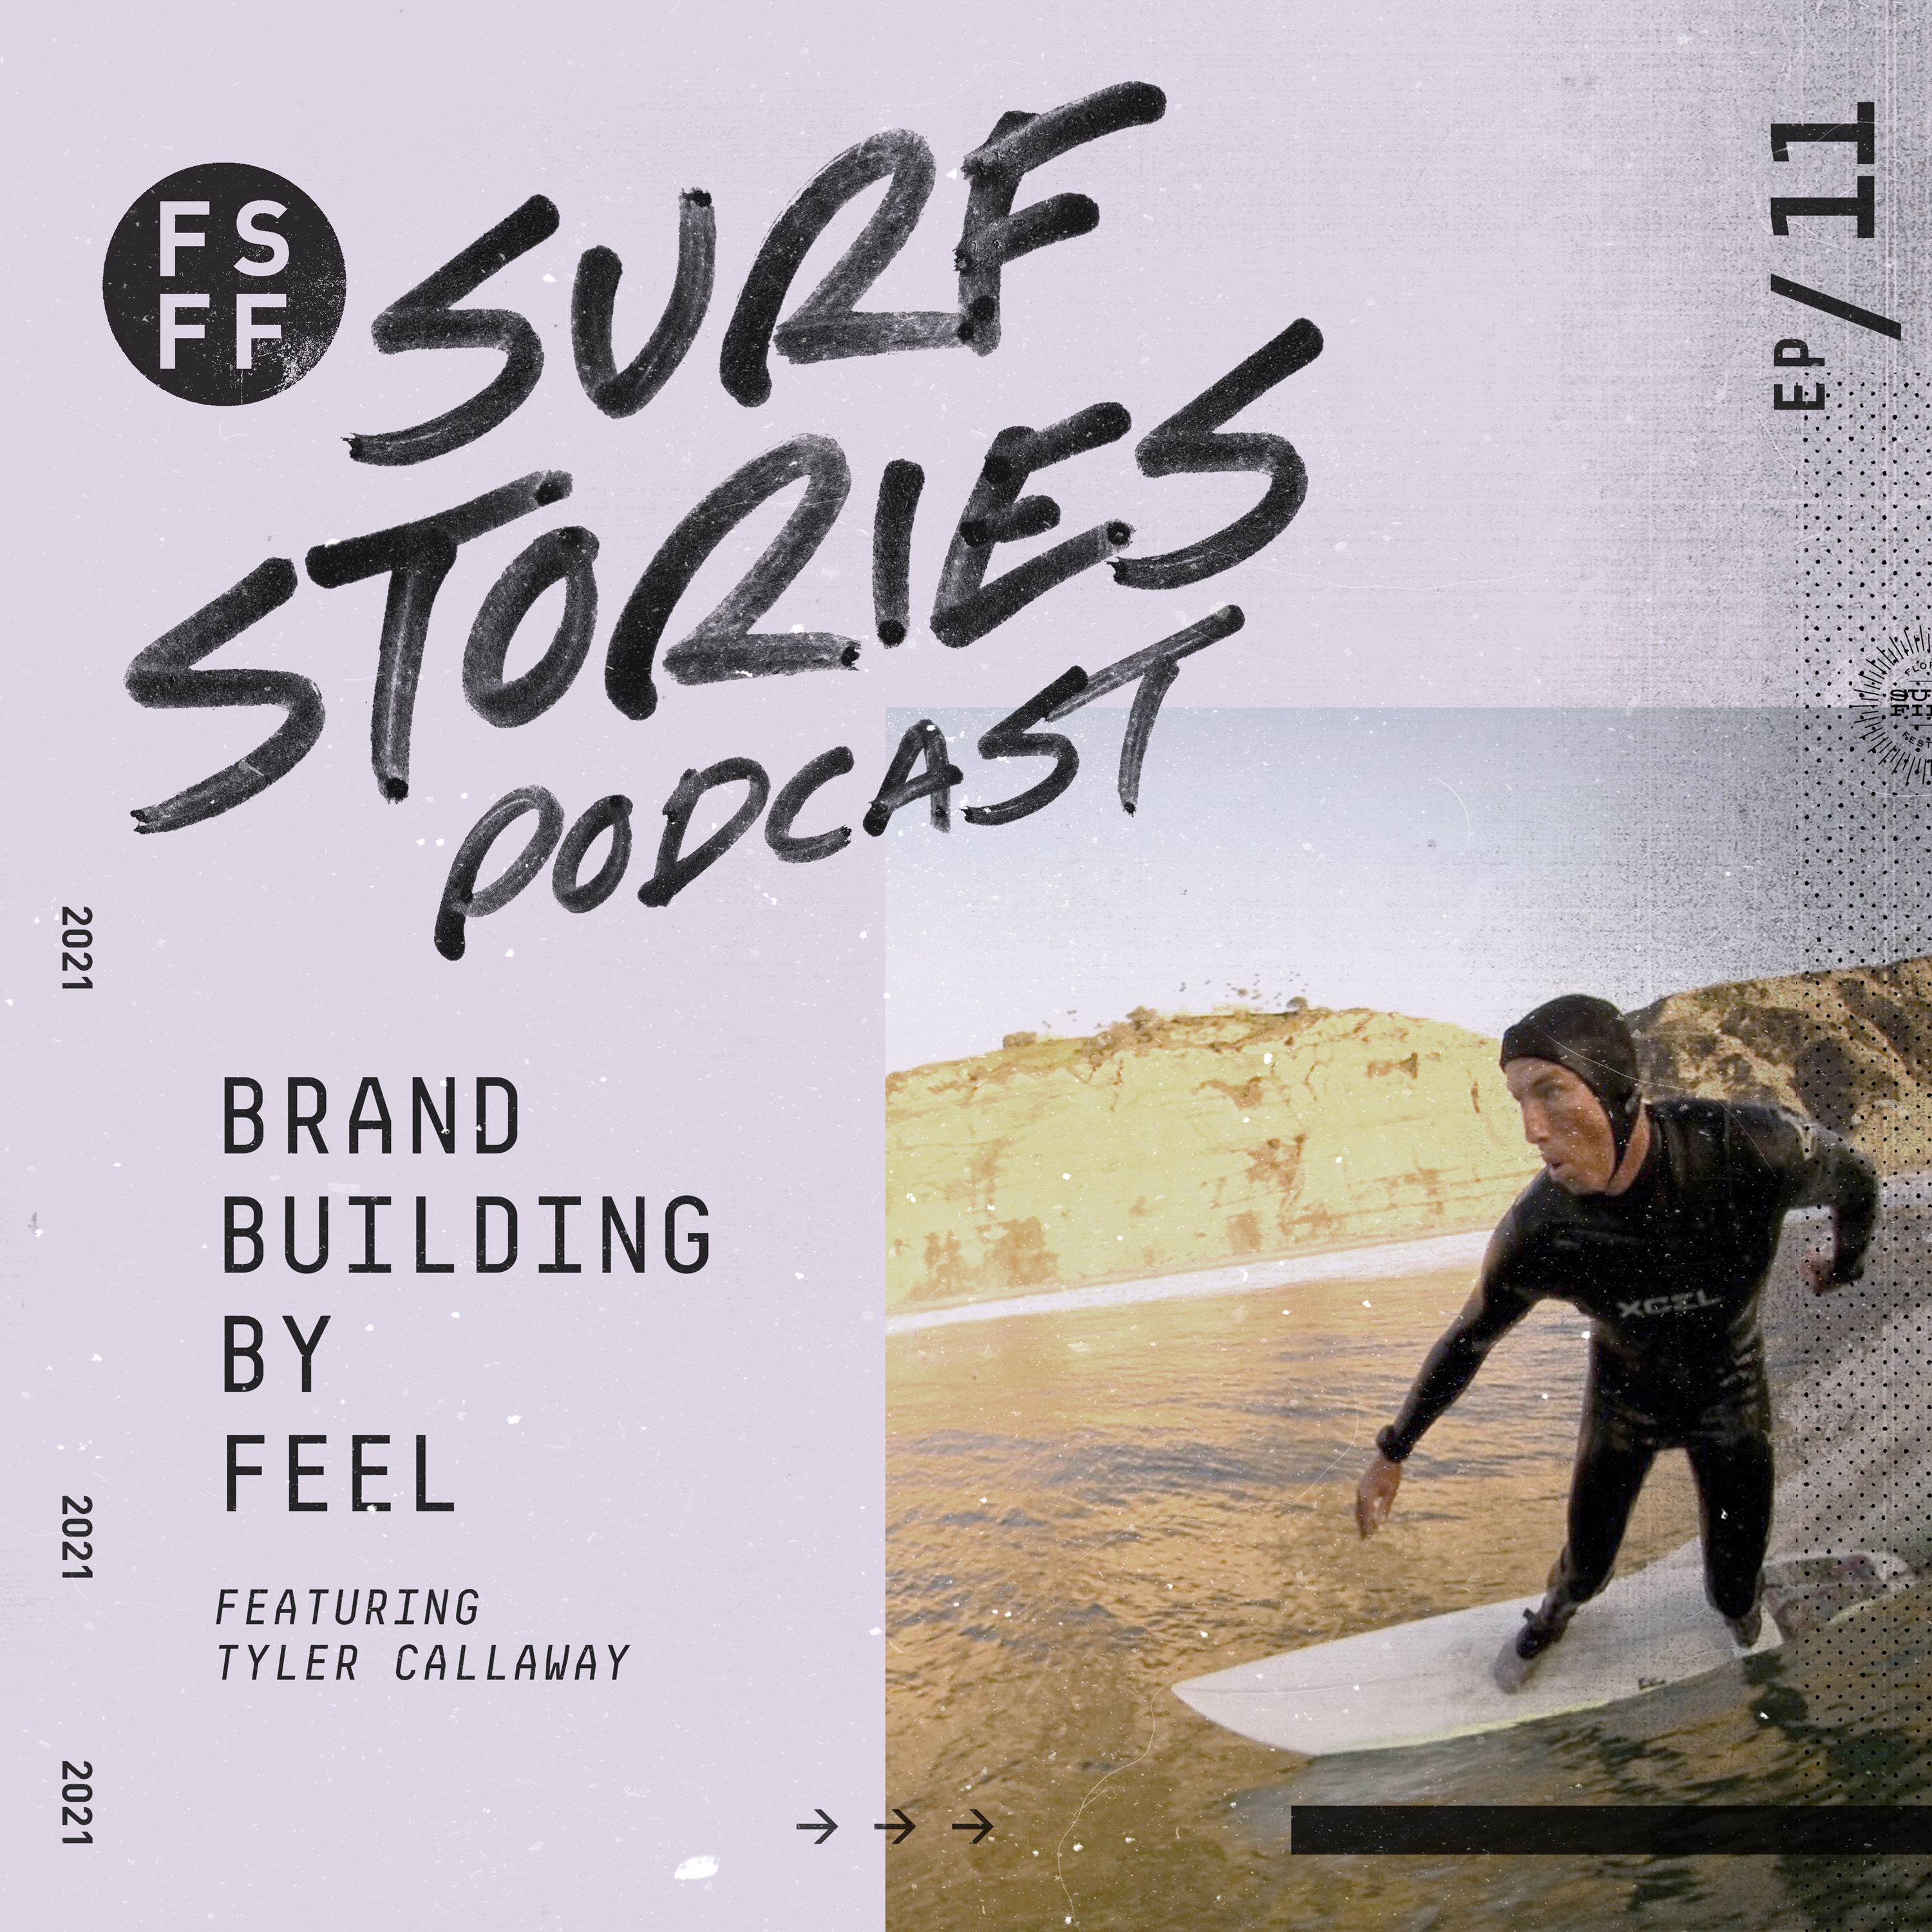 Brand Building by Feel with Tyler Callaway